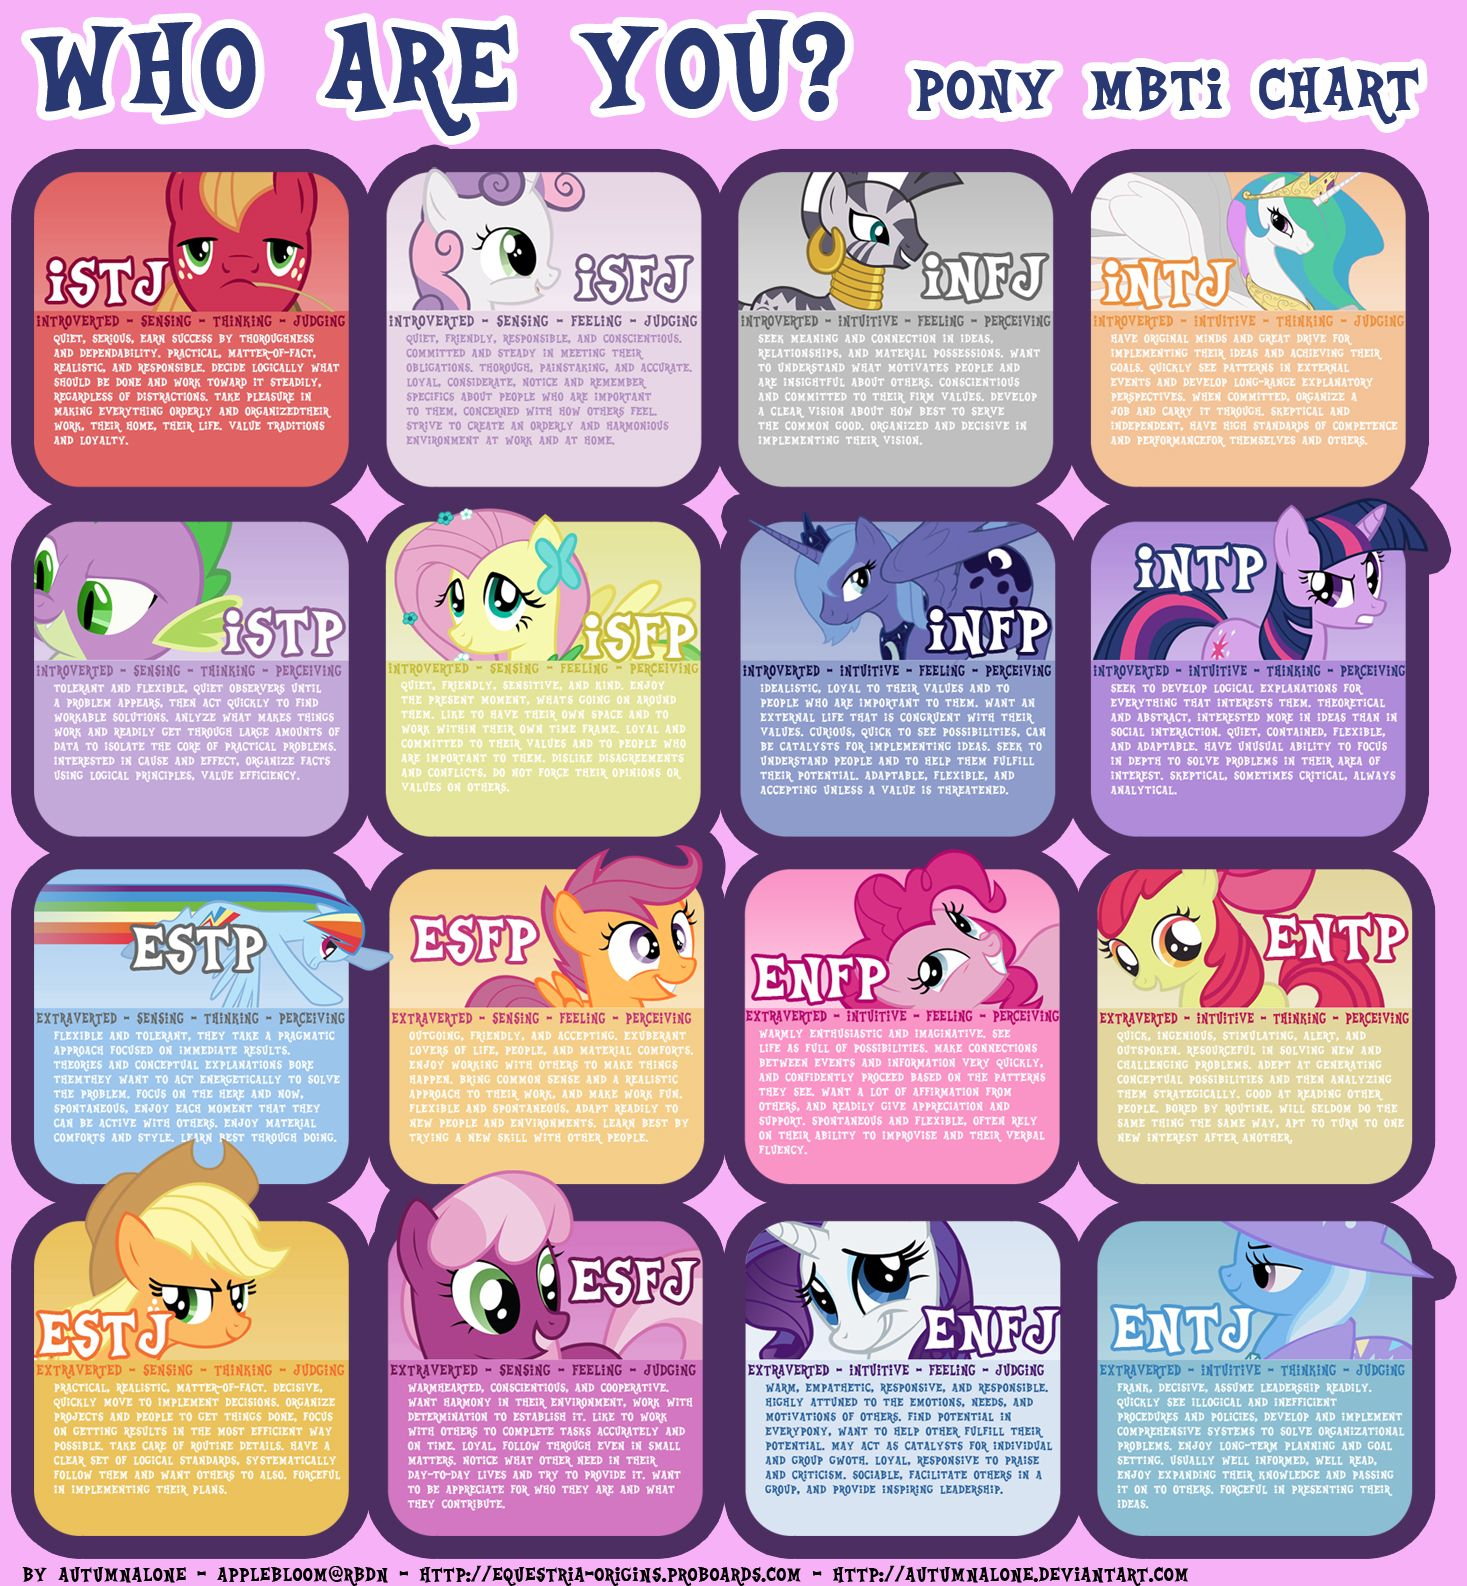 Myers-Briggs / MLPTI personality-type conversion chart